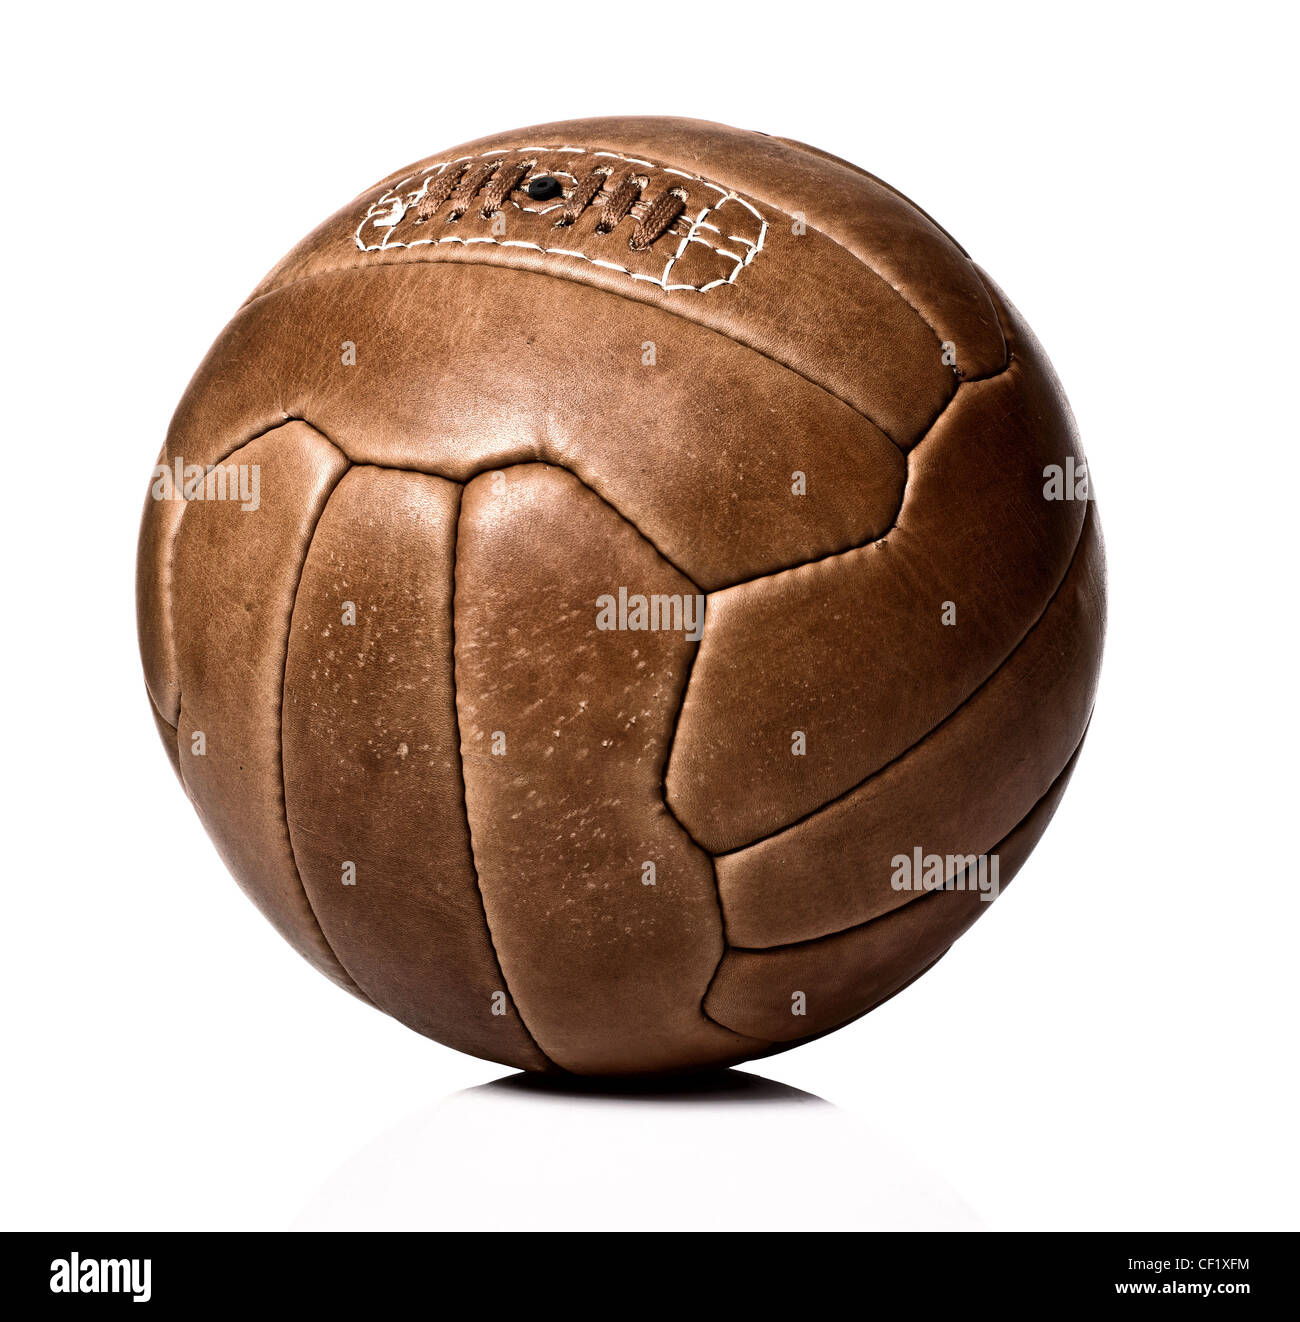 image of retro leather soccer ball - Stock Image